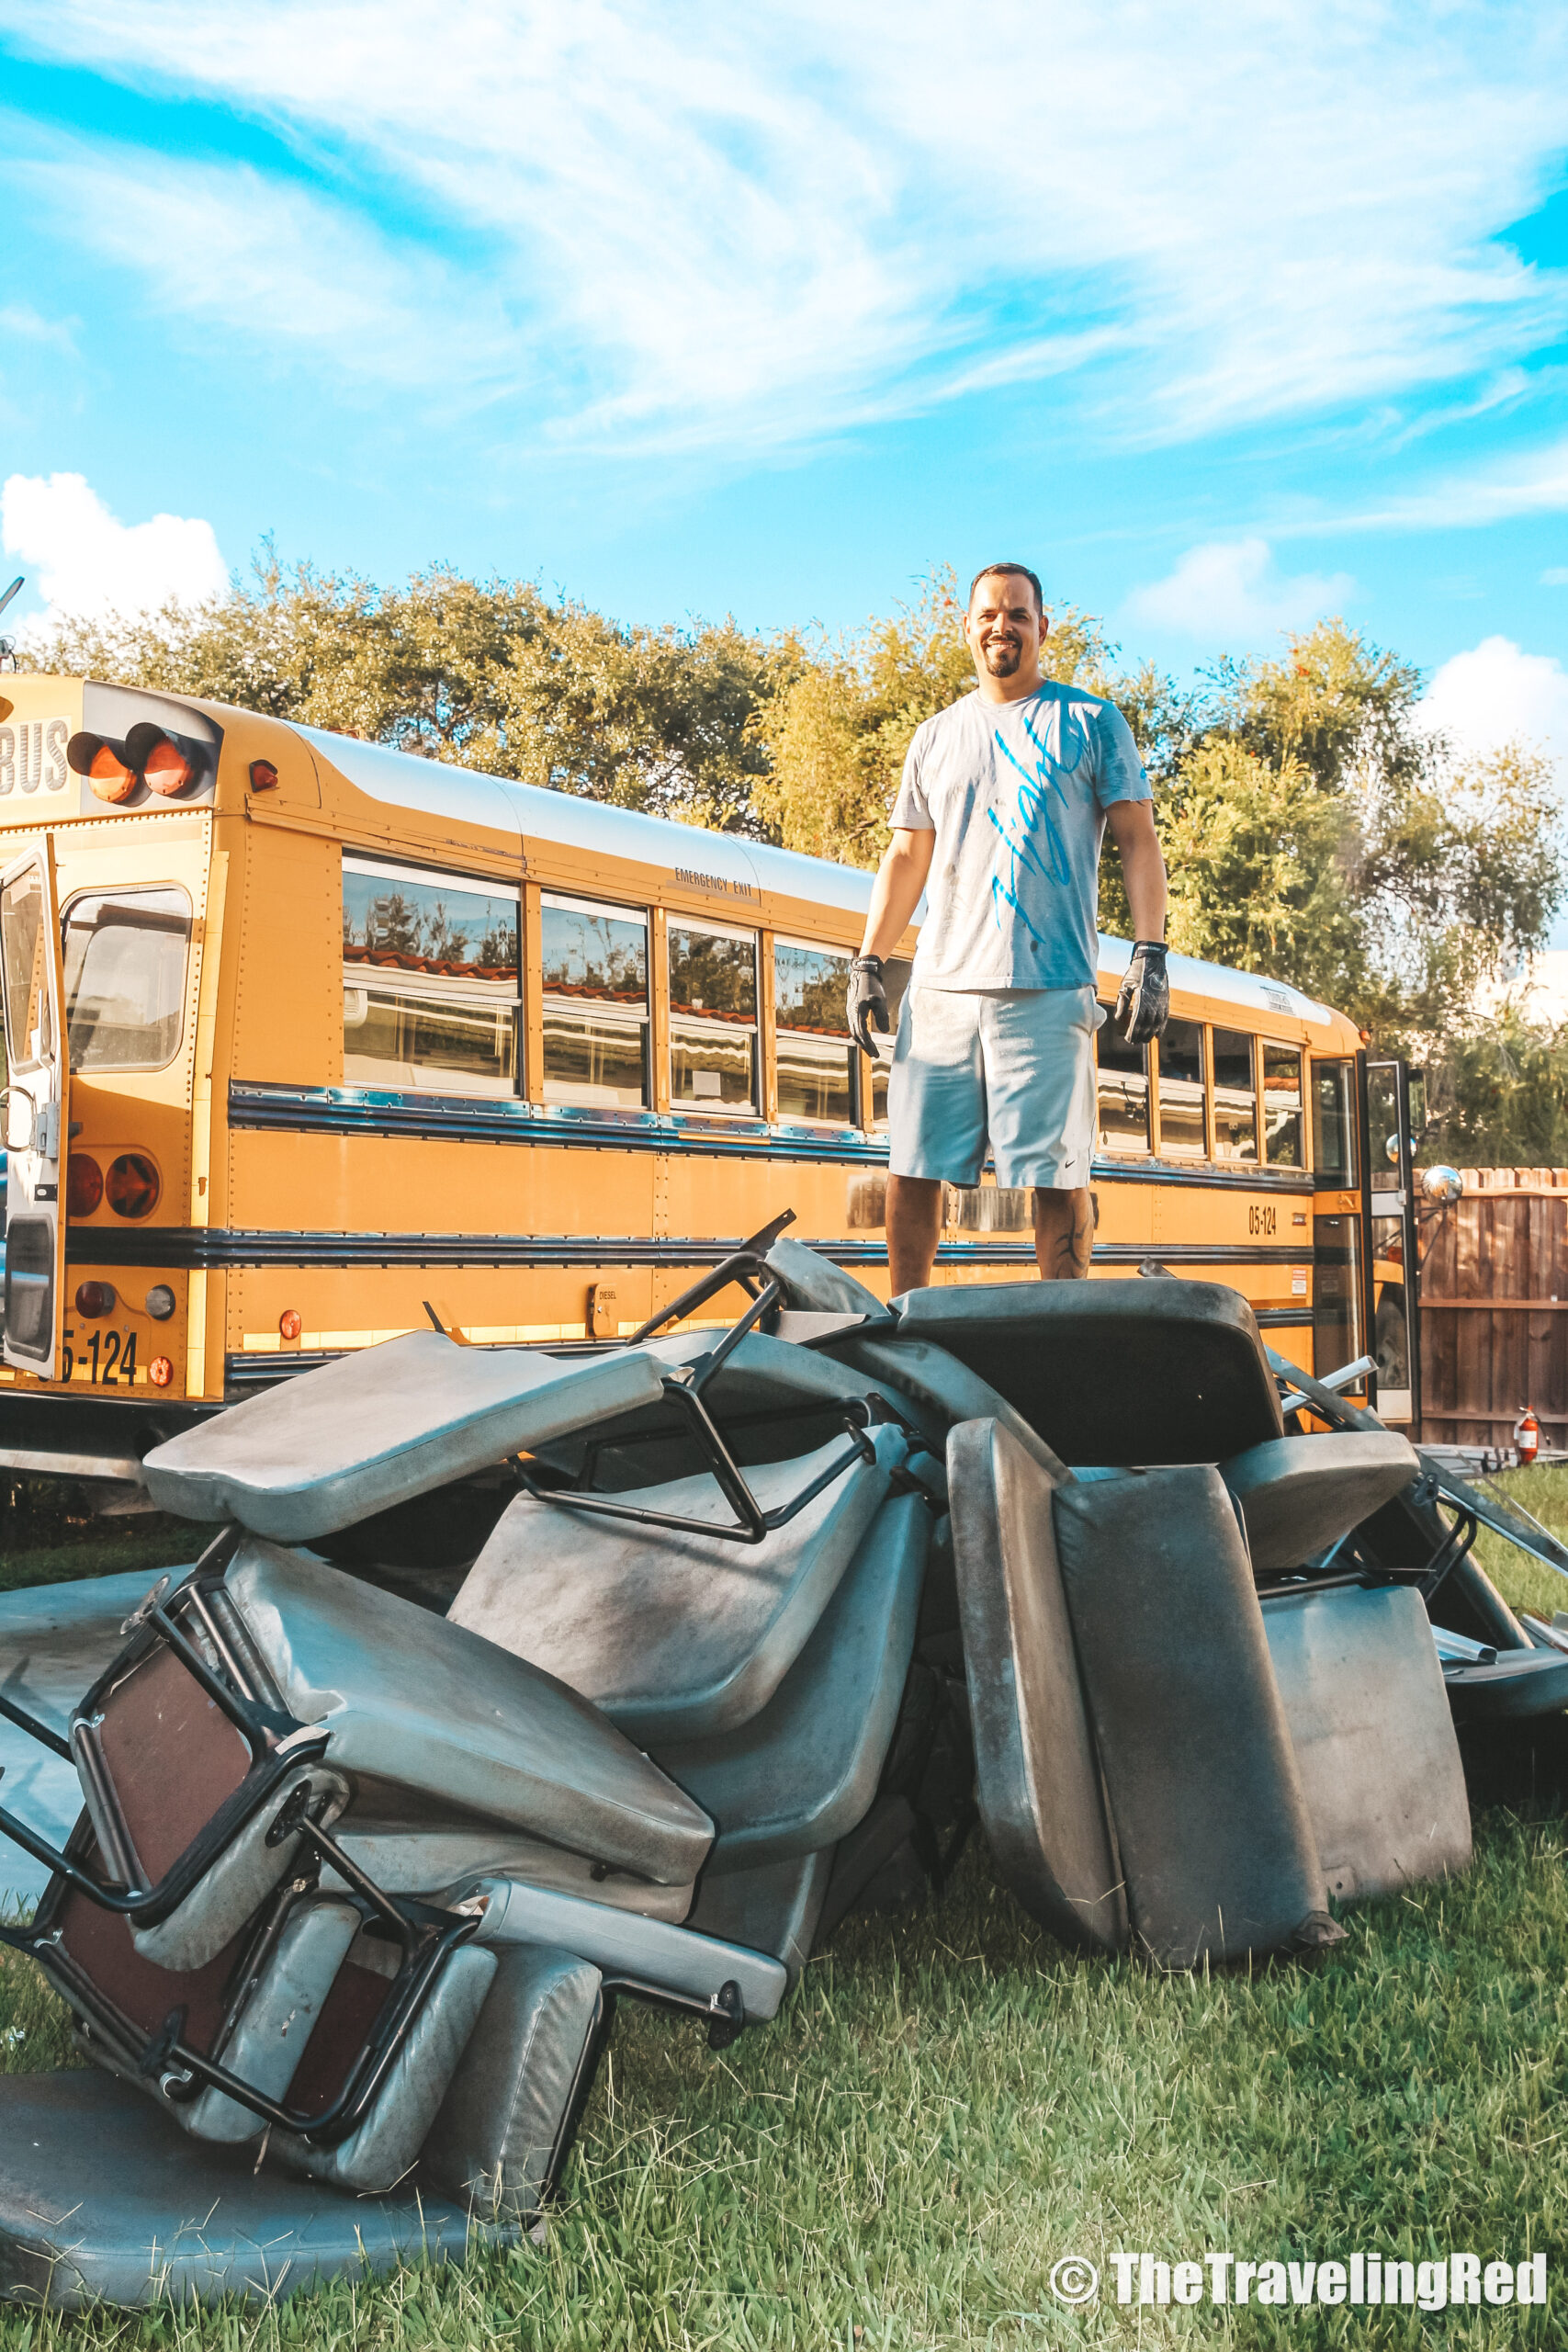 Demolition during our School Bus Conversion, 2 Cool 4 Skool Bus. Full analysis of the cost of converting a yellow school bus into a vacation home on wheels. All of the details of our skoolie conversion. Our vacation home that took us on a road trip around the US to see some of the countries most beautiful places. #ConversionCost #SchoolBus #Skoolie #SchoolBusConversion